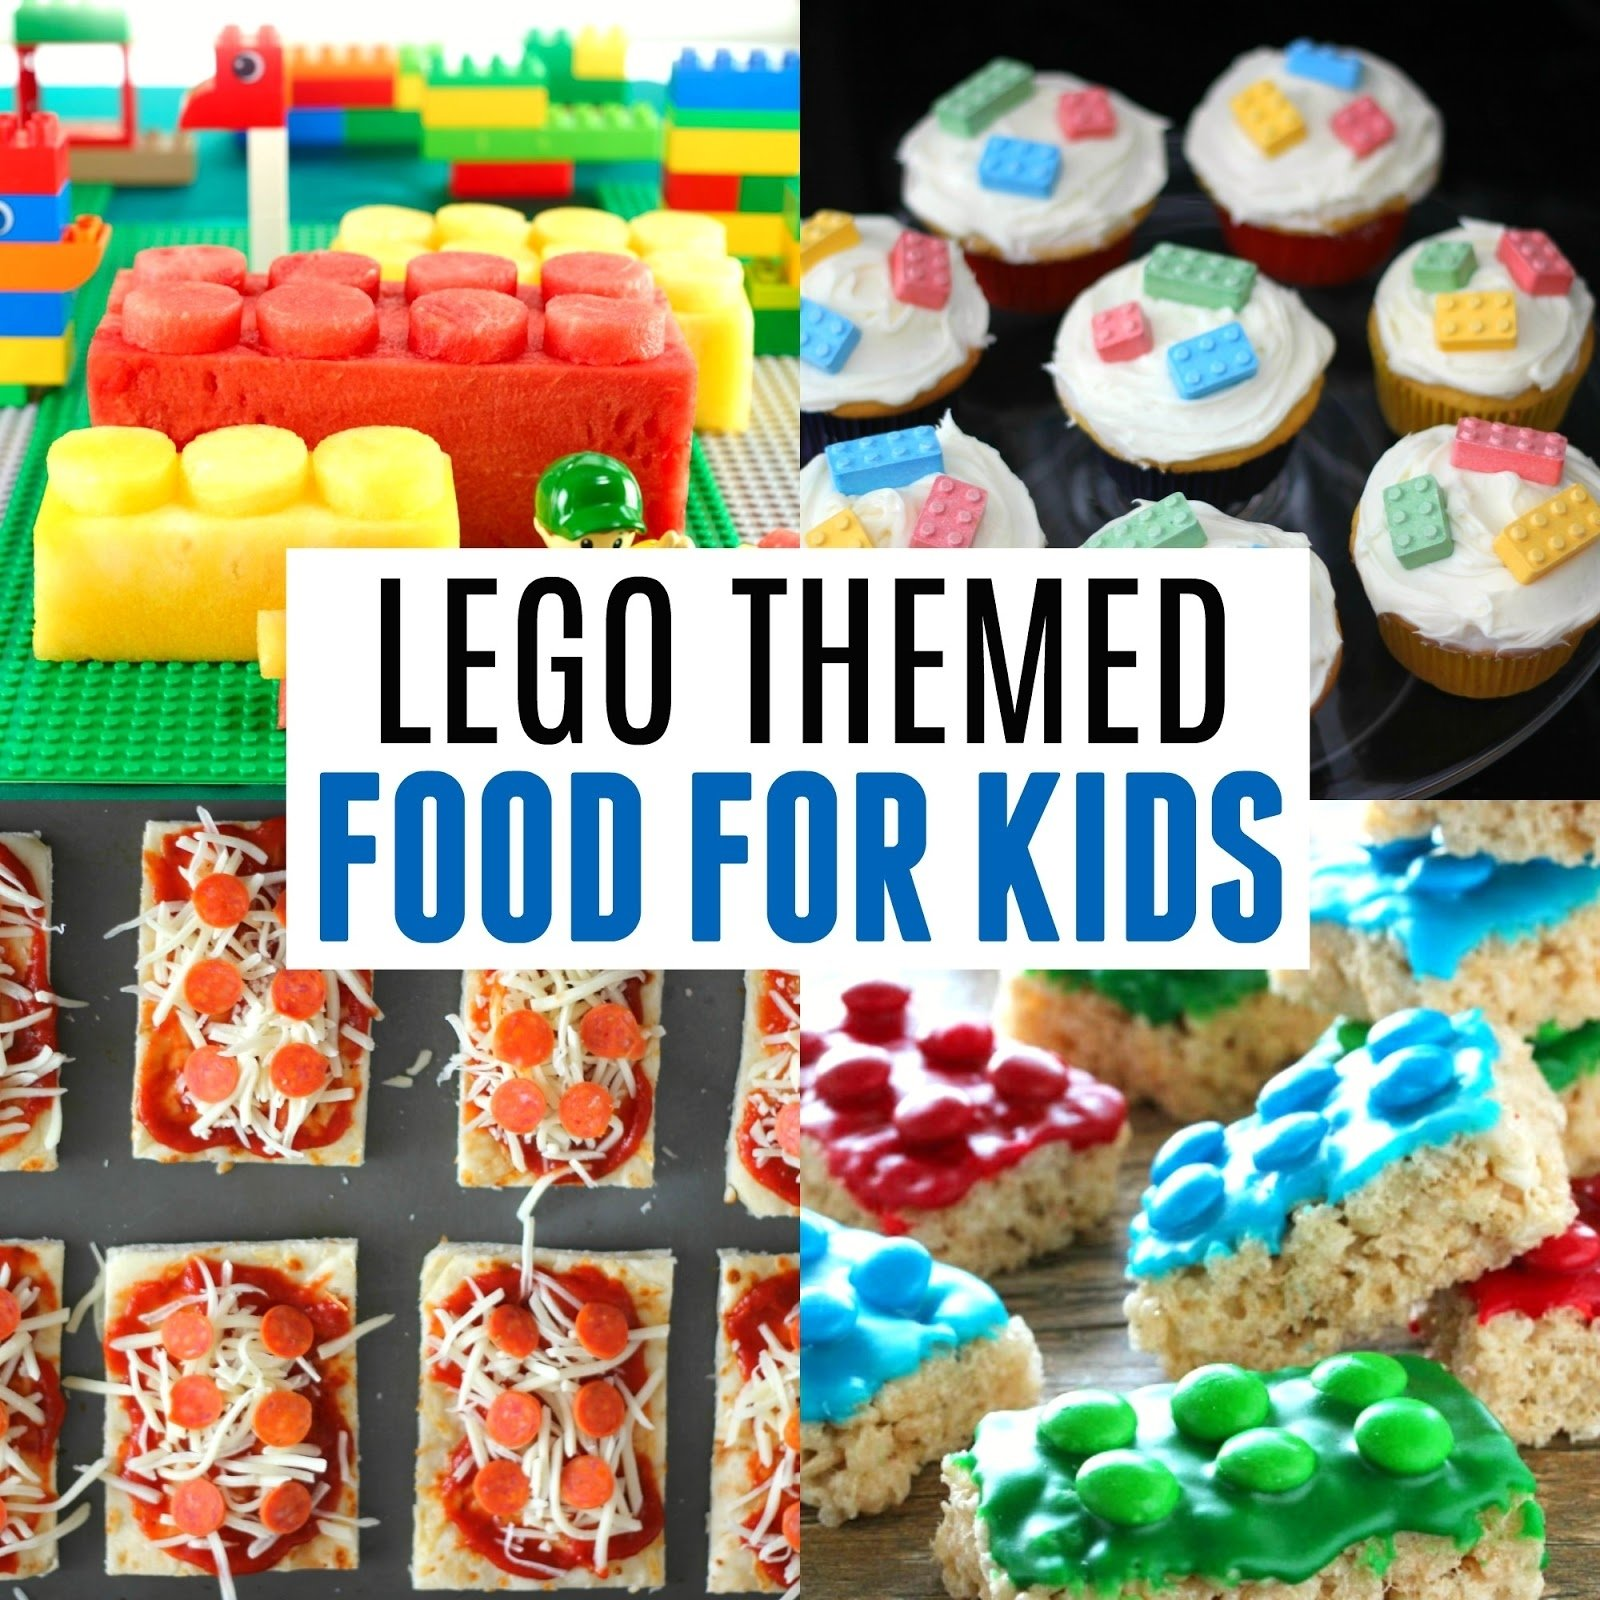 10 Nice Lego Birthday Party Food Ideas toddler approved easy lego brick themed food for kids 2020